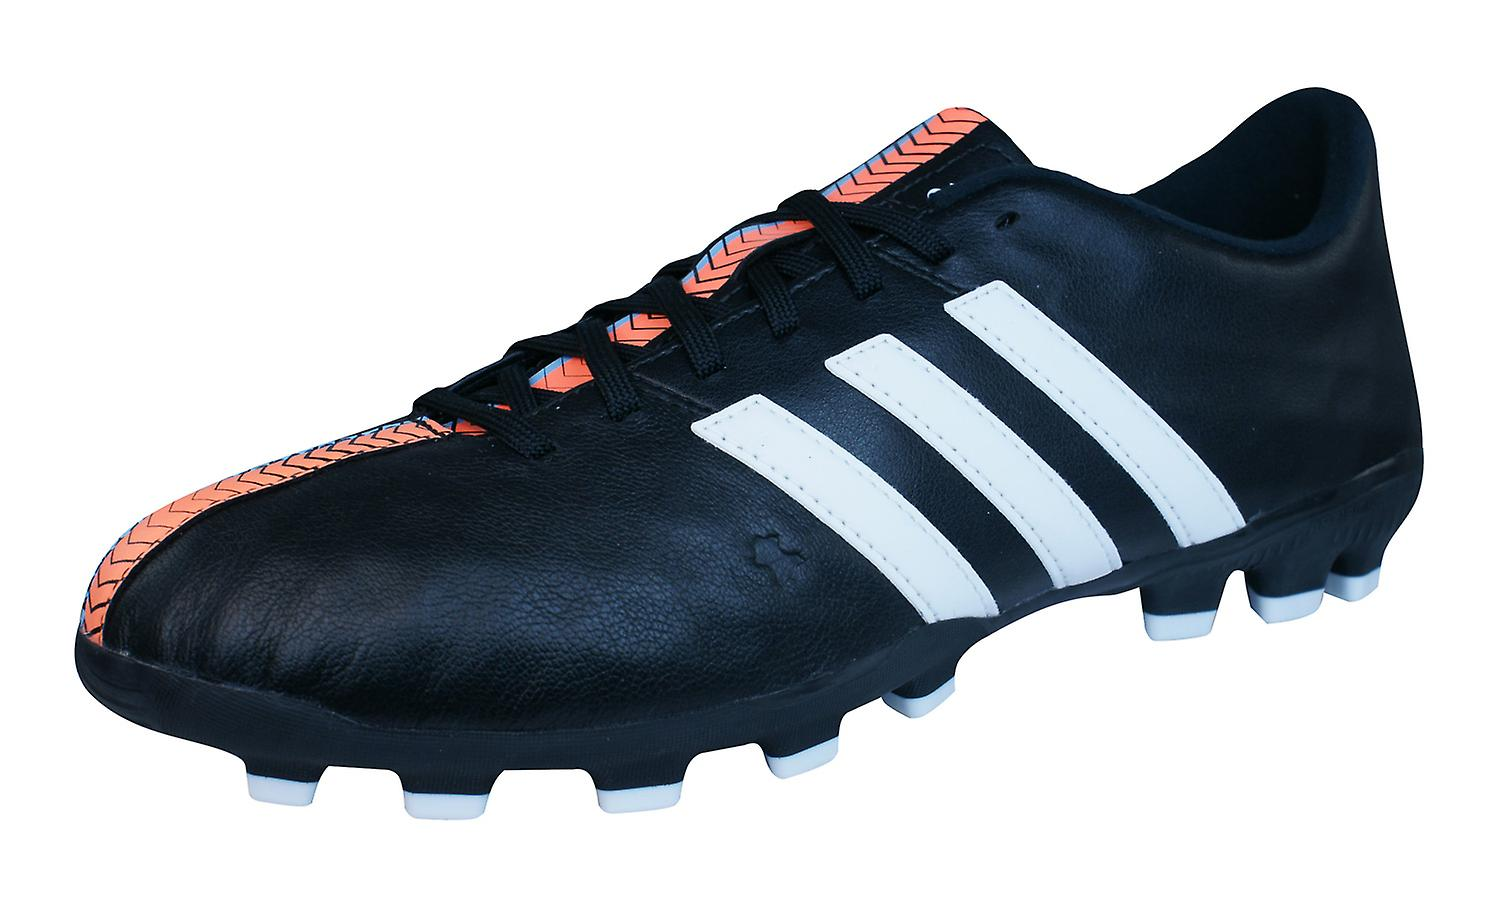 adidas Ace 15.1 SG Leather Mens Football Boots   Cleats - Orange Black 83f20ee10